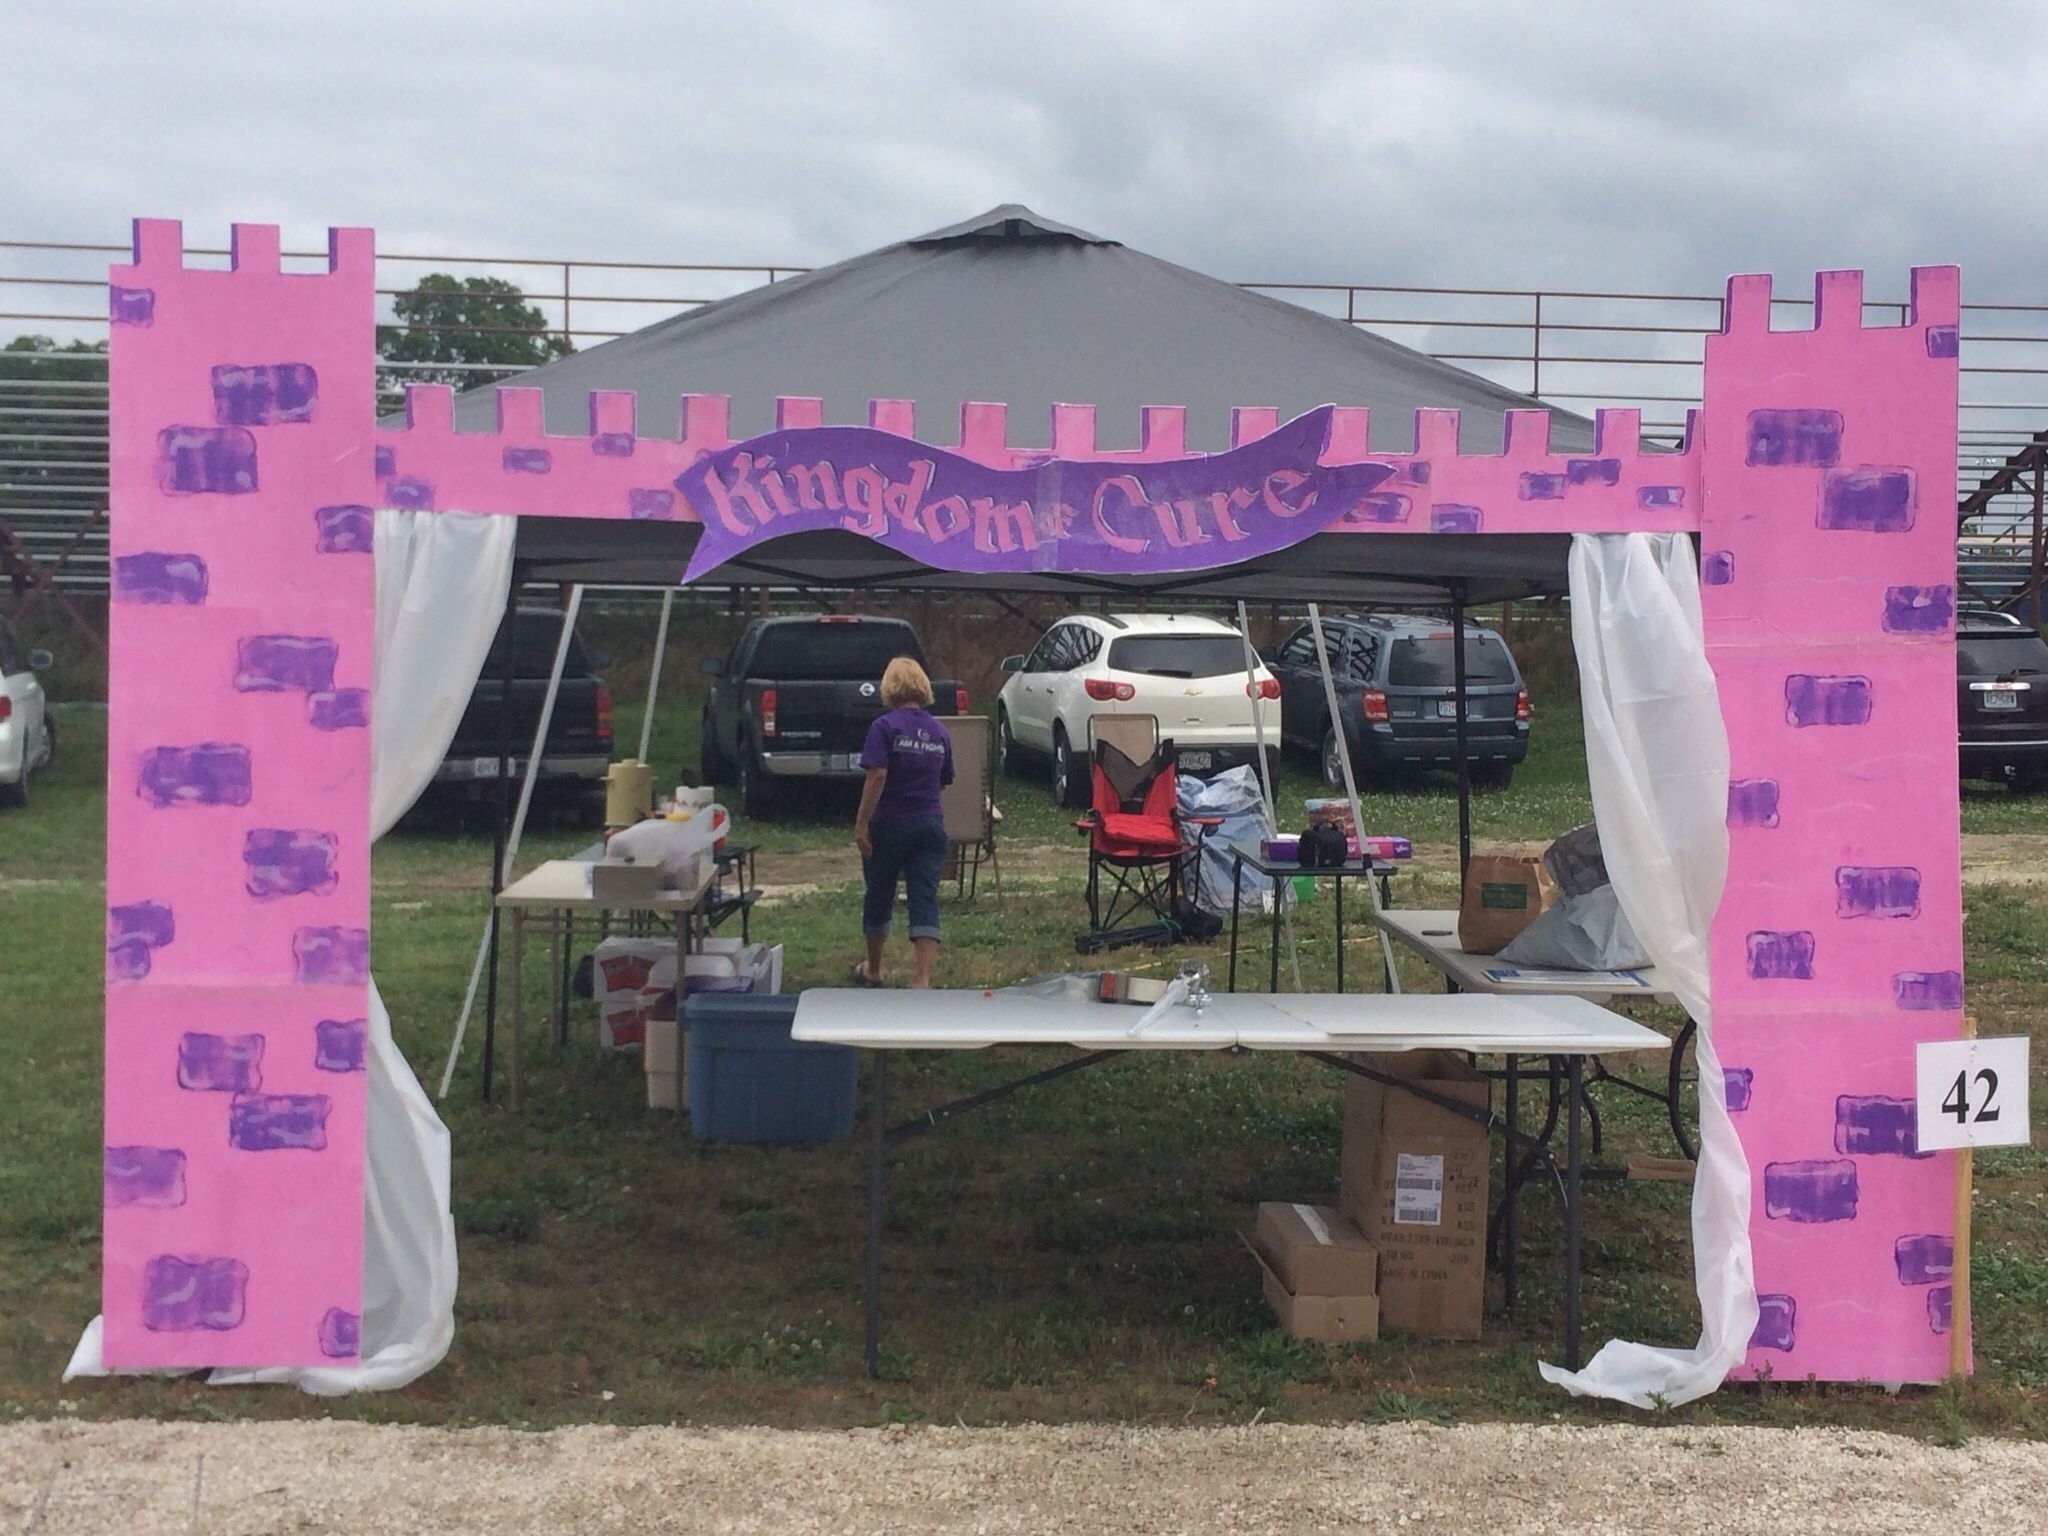 10 Perfect Relay For Life Booth Ideas relay for life once upon a cure theme princess castle booth tent 2021